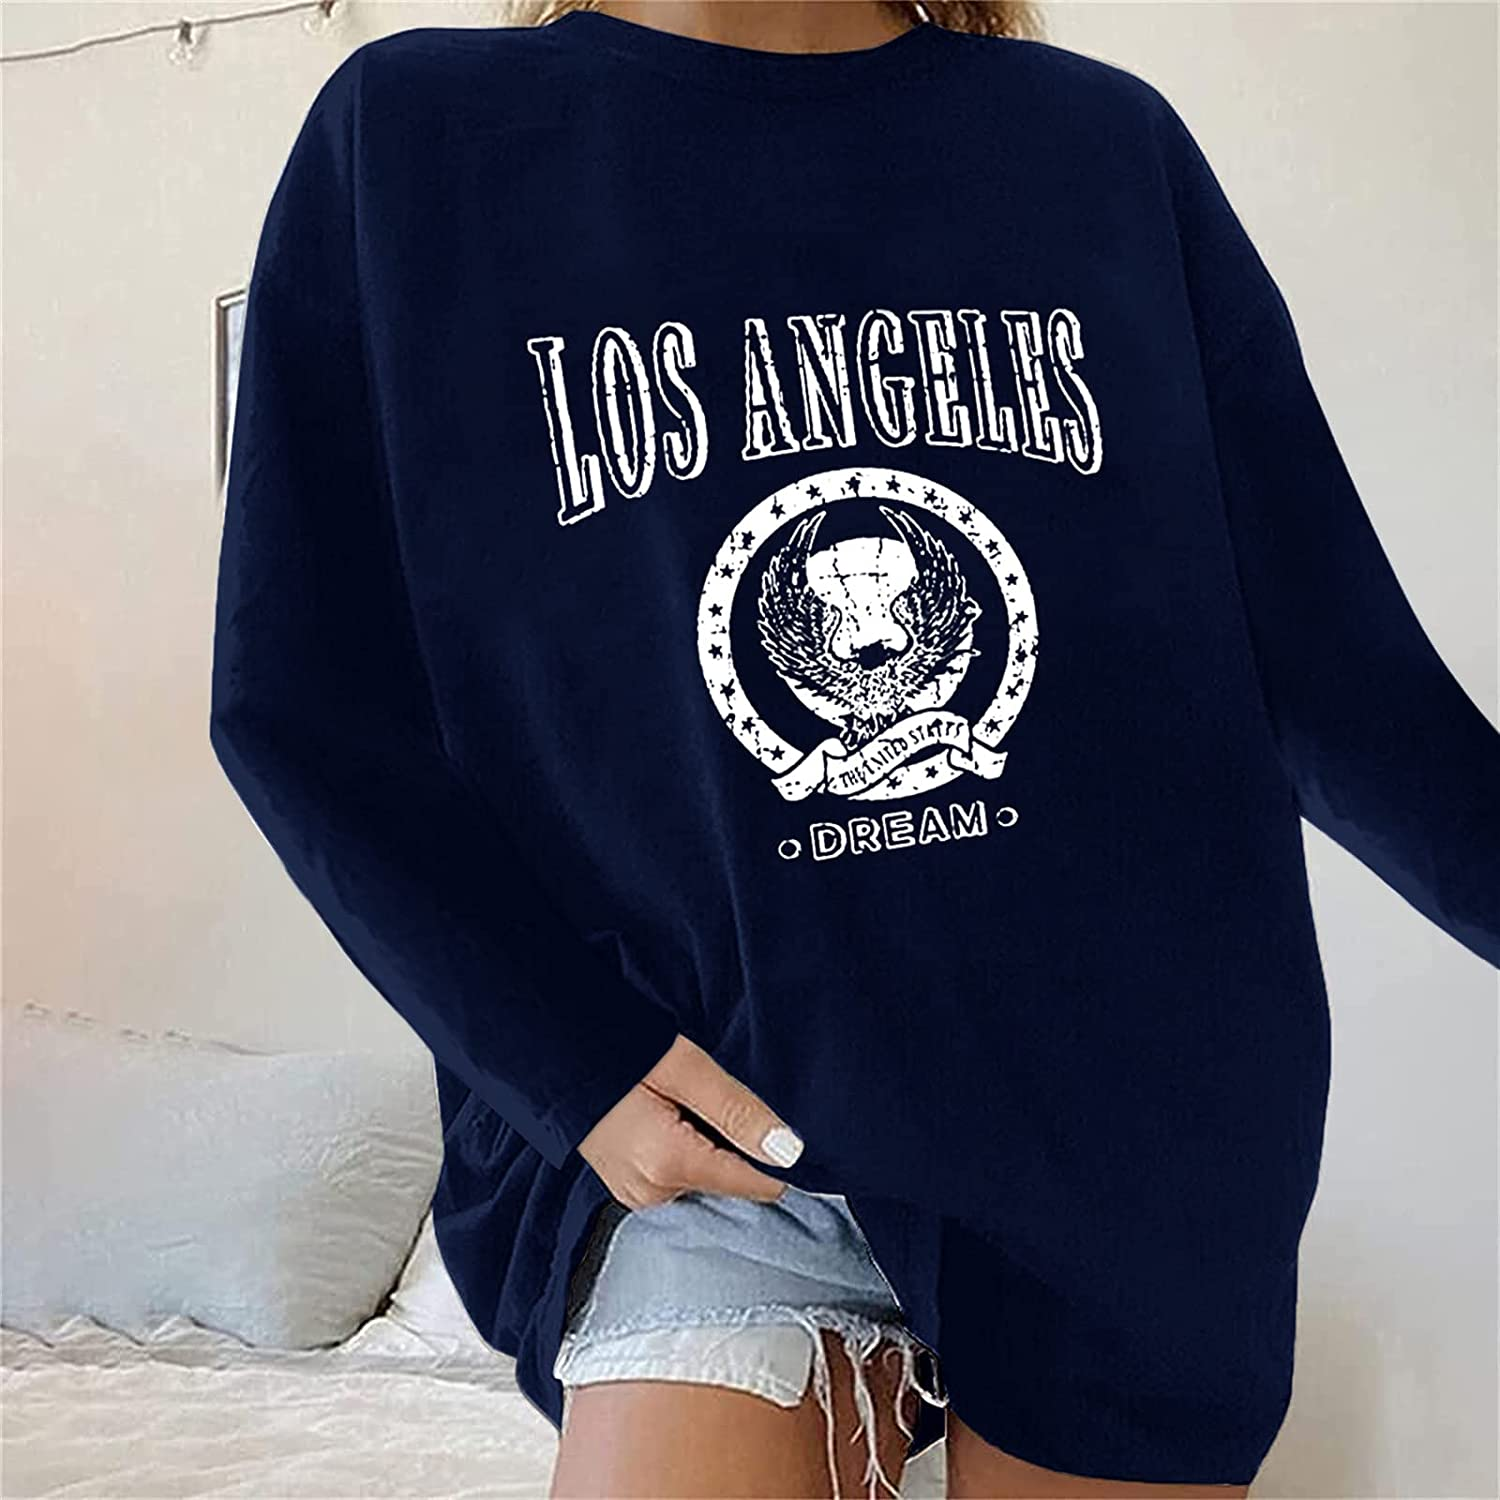 Beclgo Oversized Long Sleeve Shirts for Women Letter Print Basic Outdoor Workout Casual Fall Thermal Tops